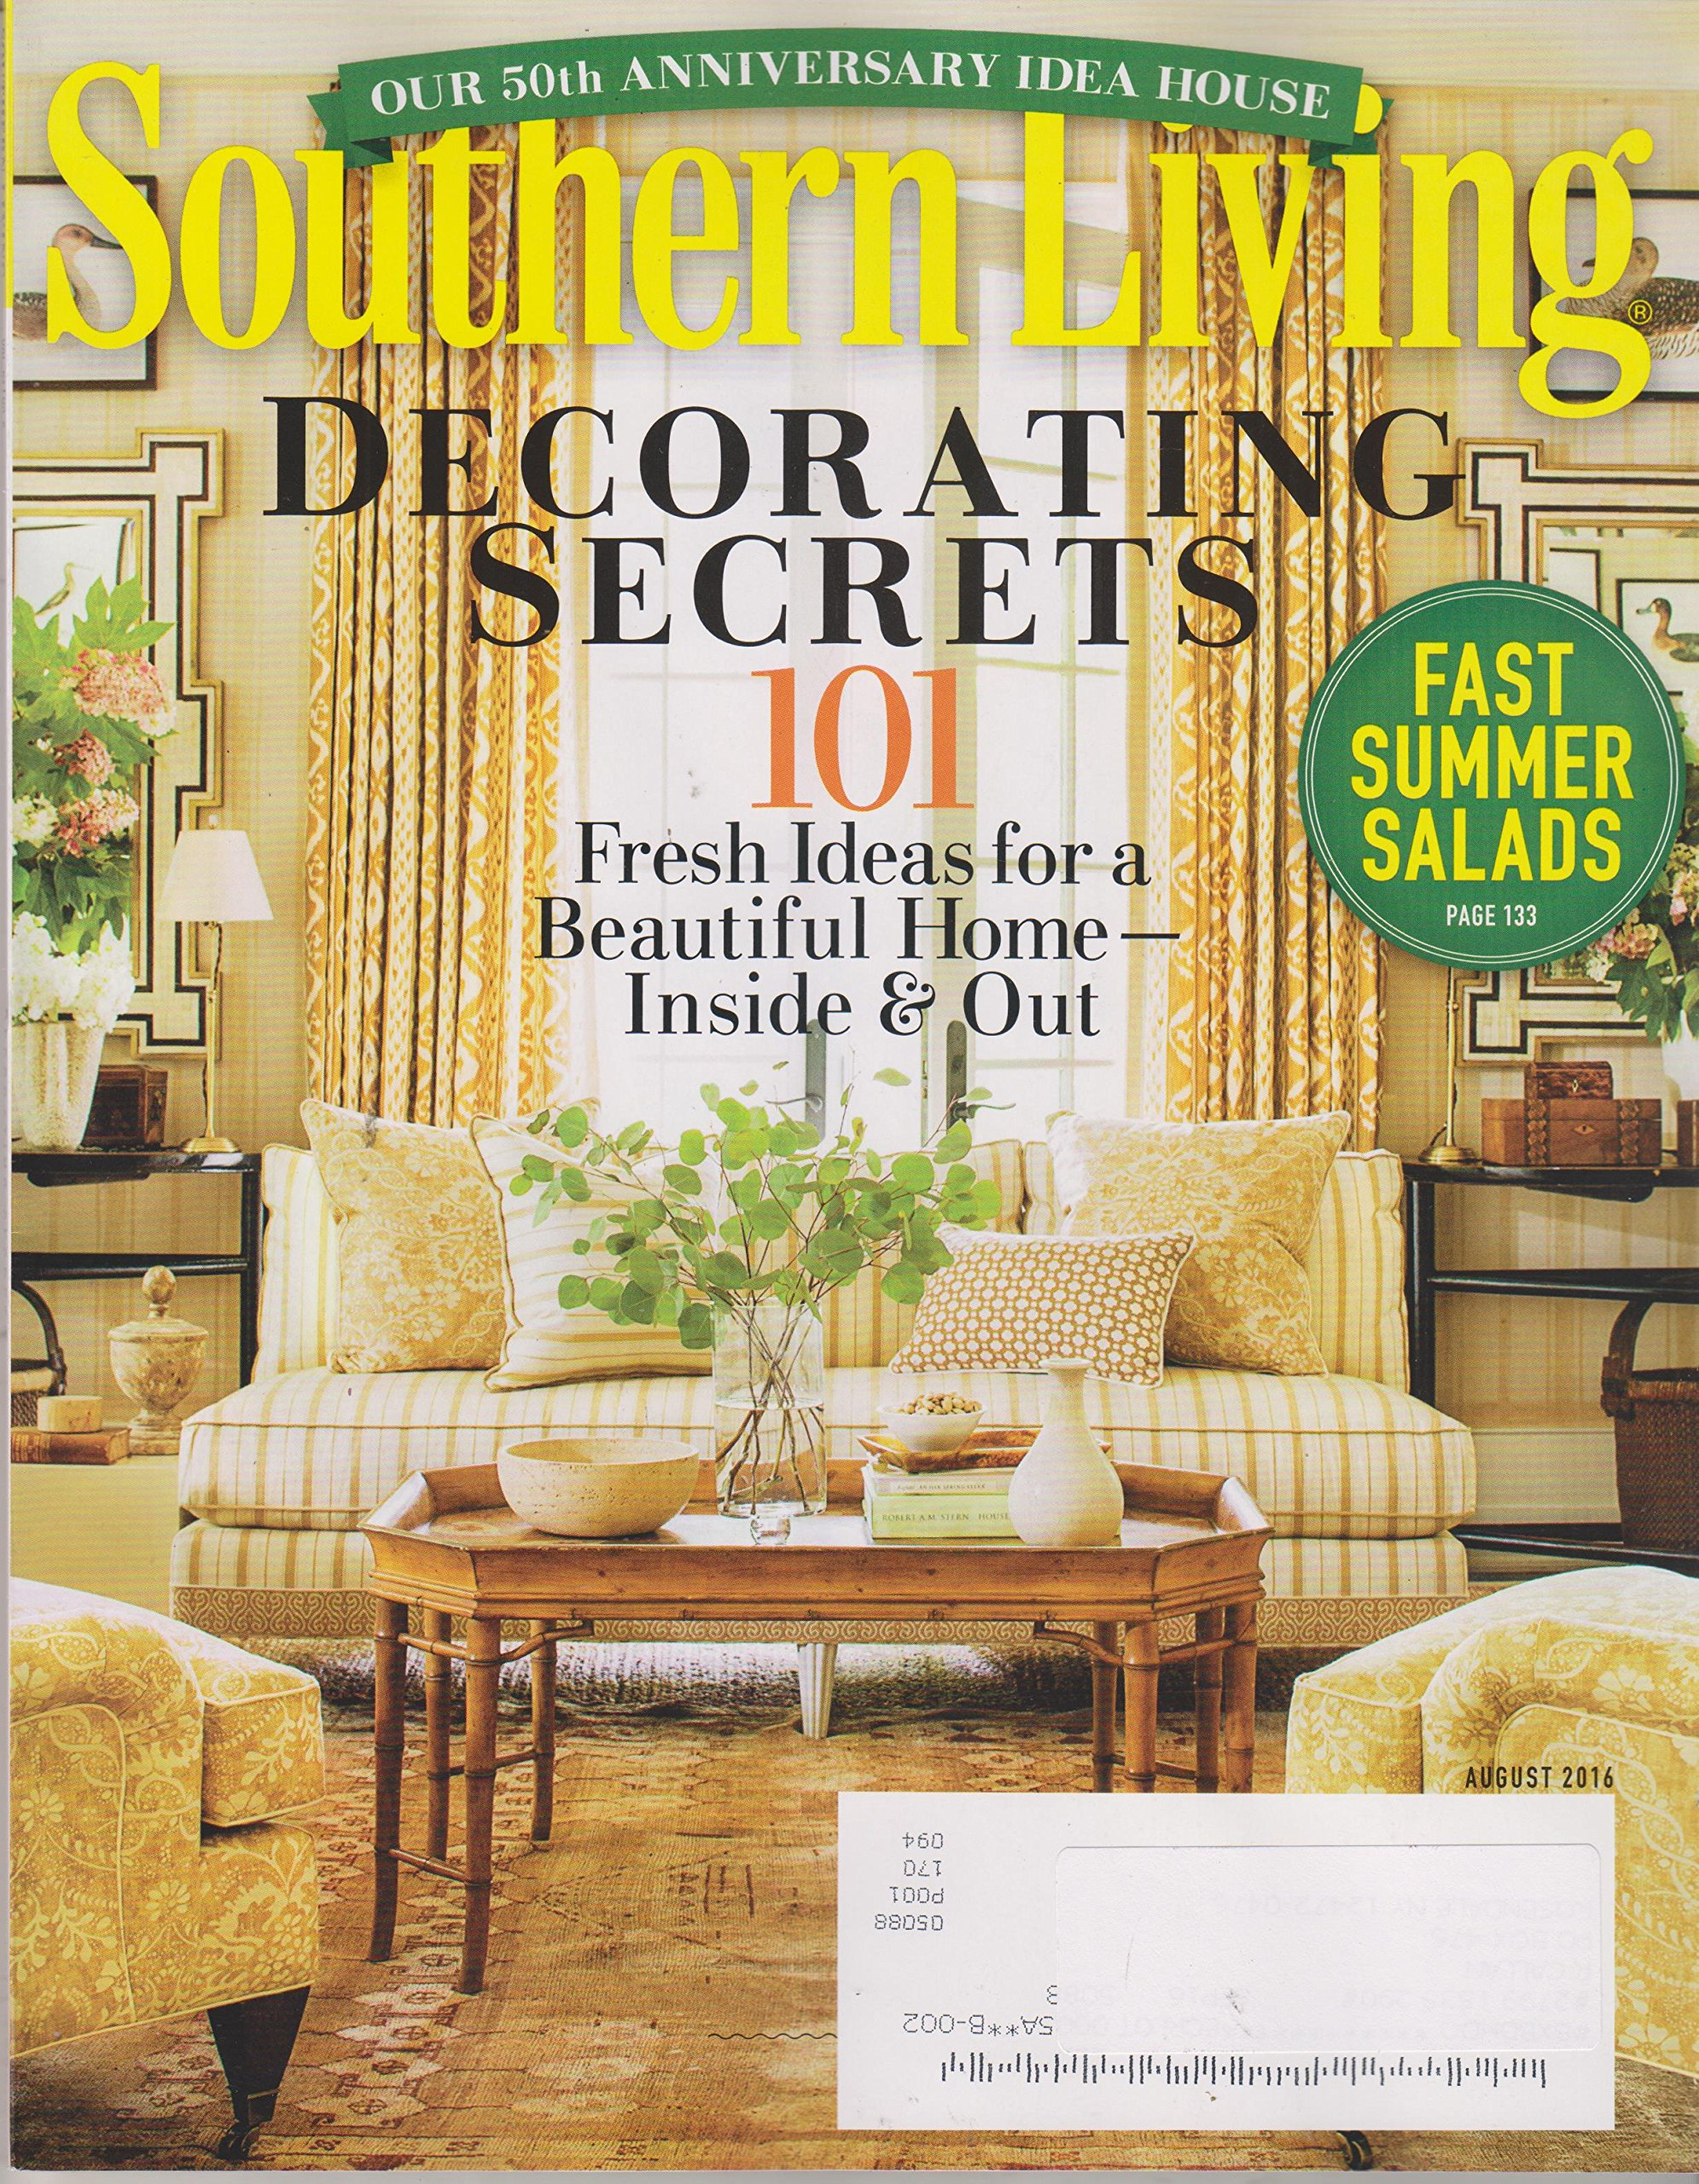 Read Online Southern Living August 2016 Decorating Secrets 101 Fresh Ideas for a Beautiful Home PDF